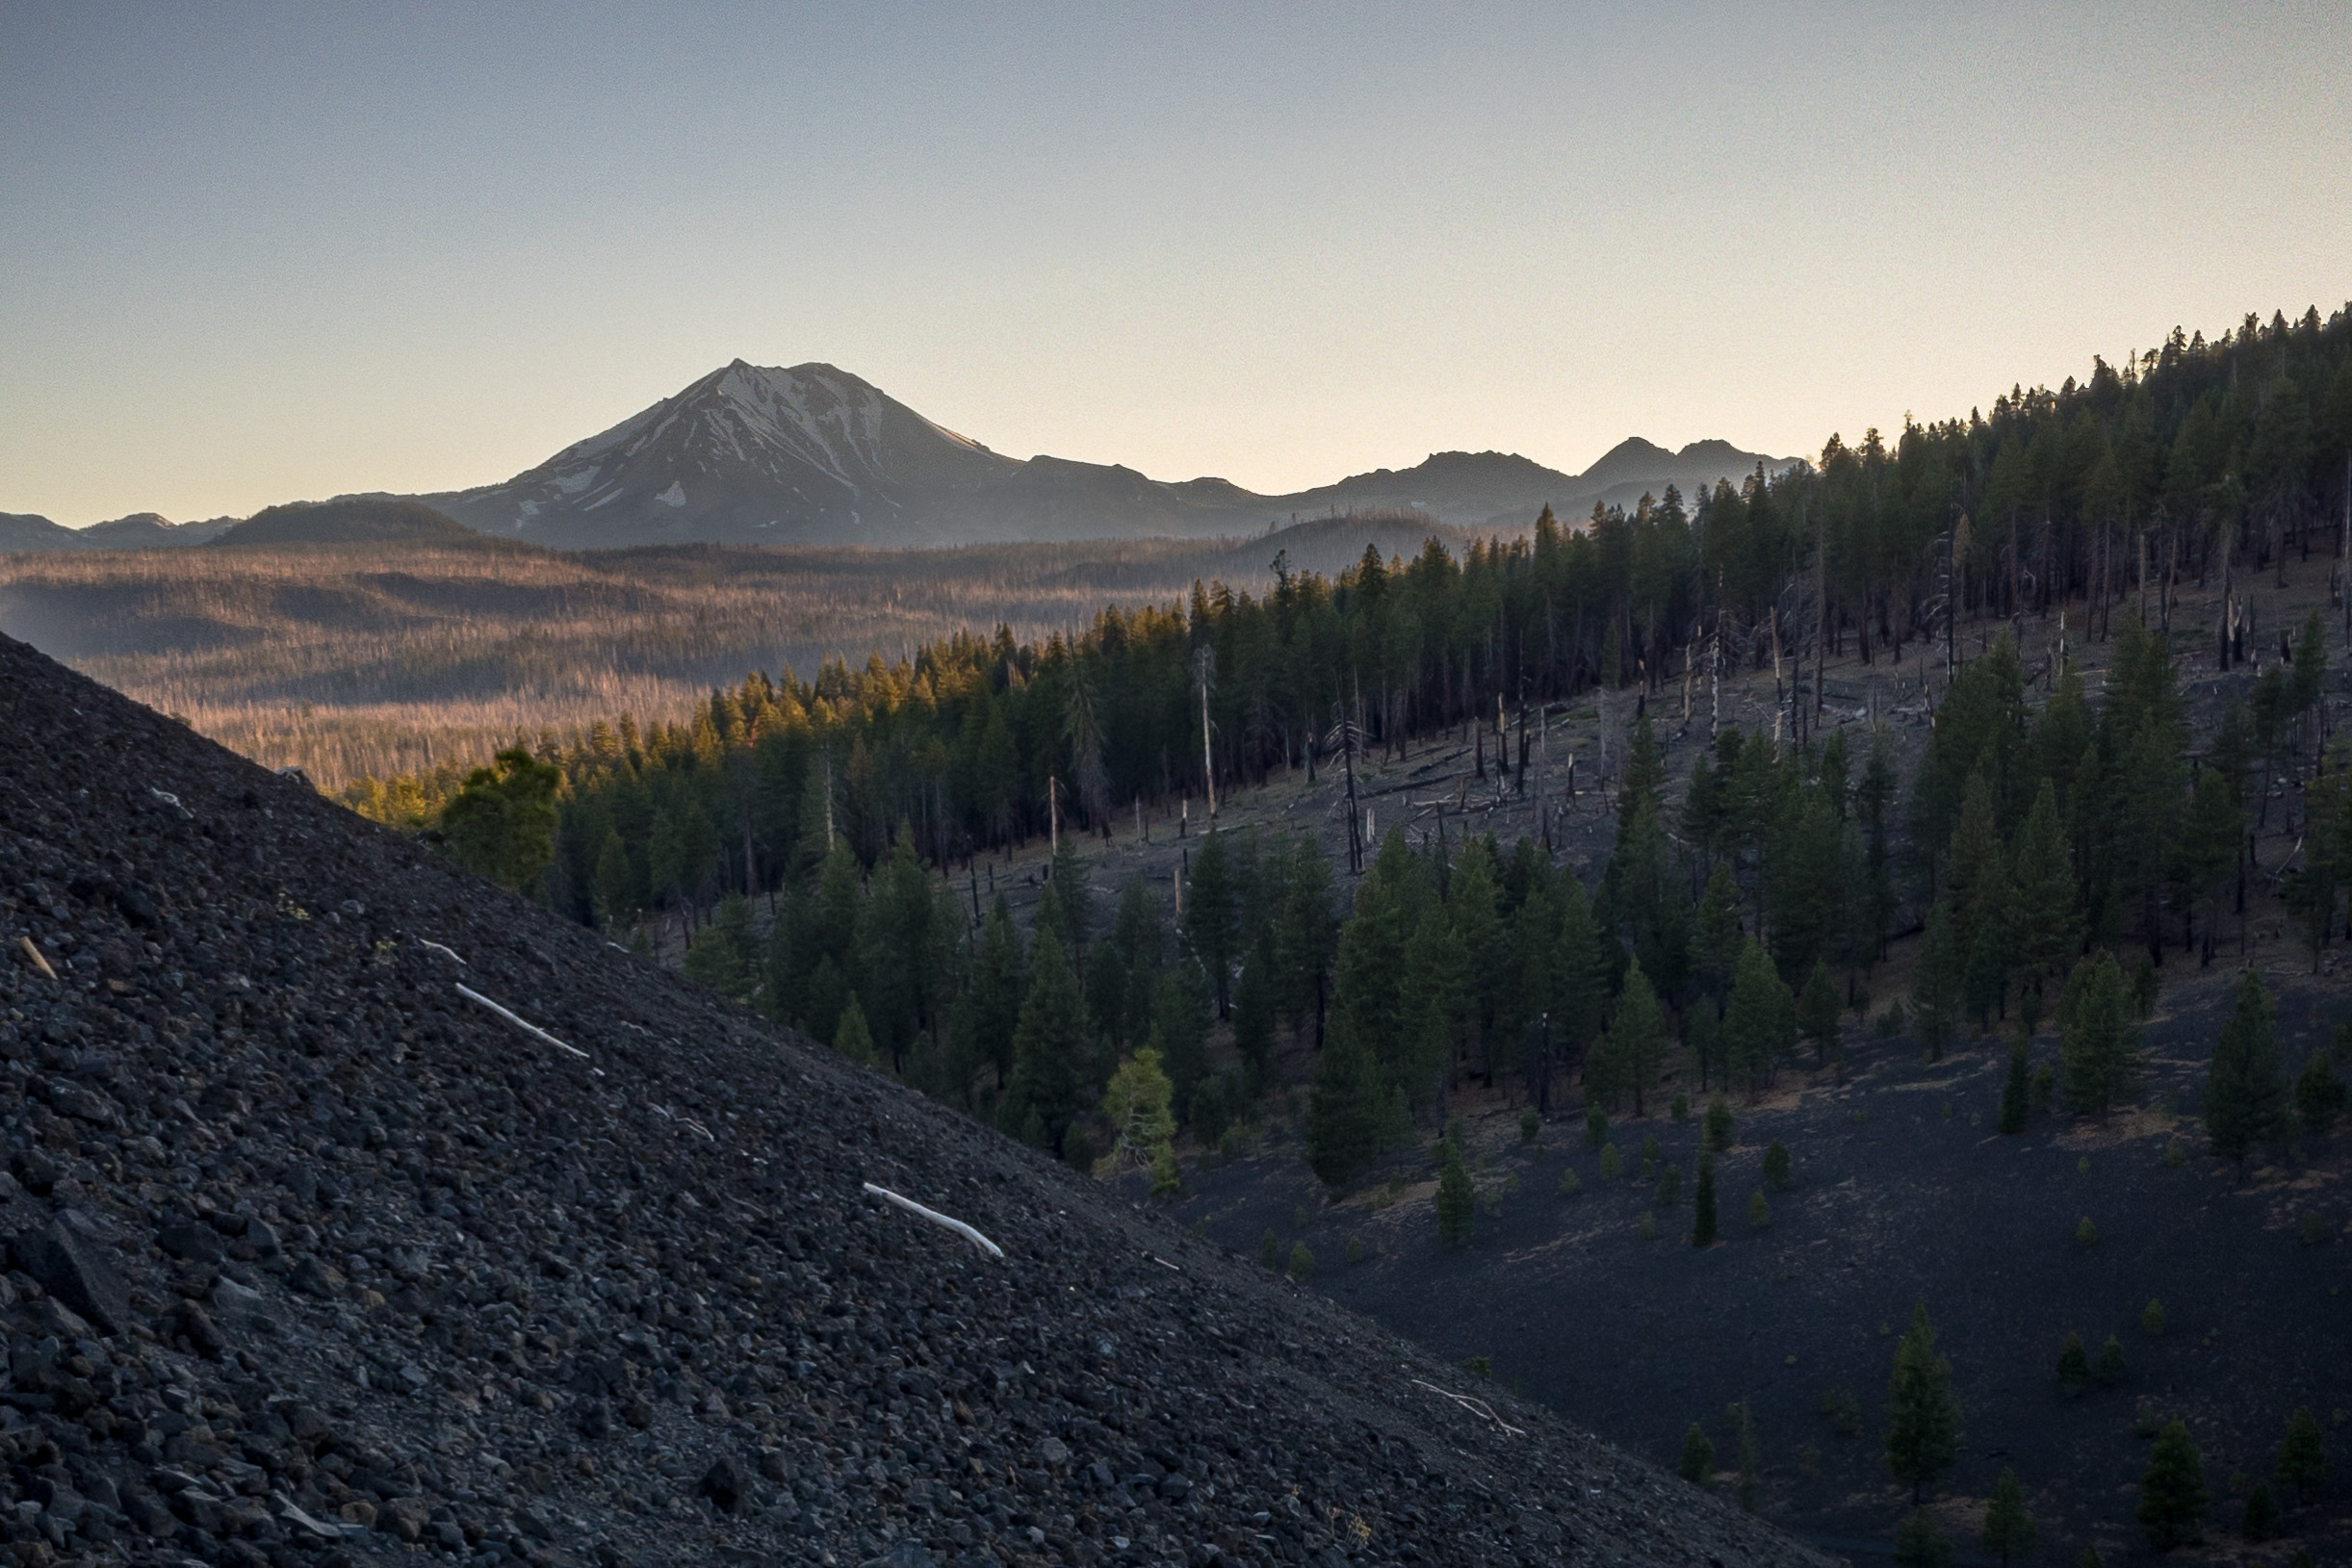 Lassen peak from Cinder Cone at Sunset. iPhone 6S+.